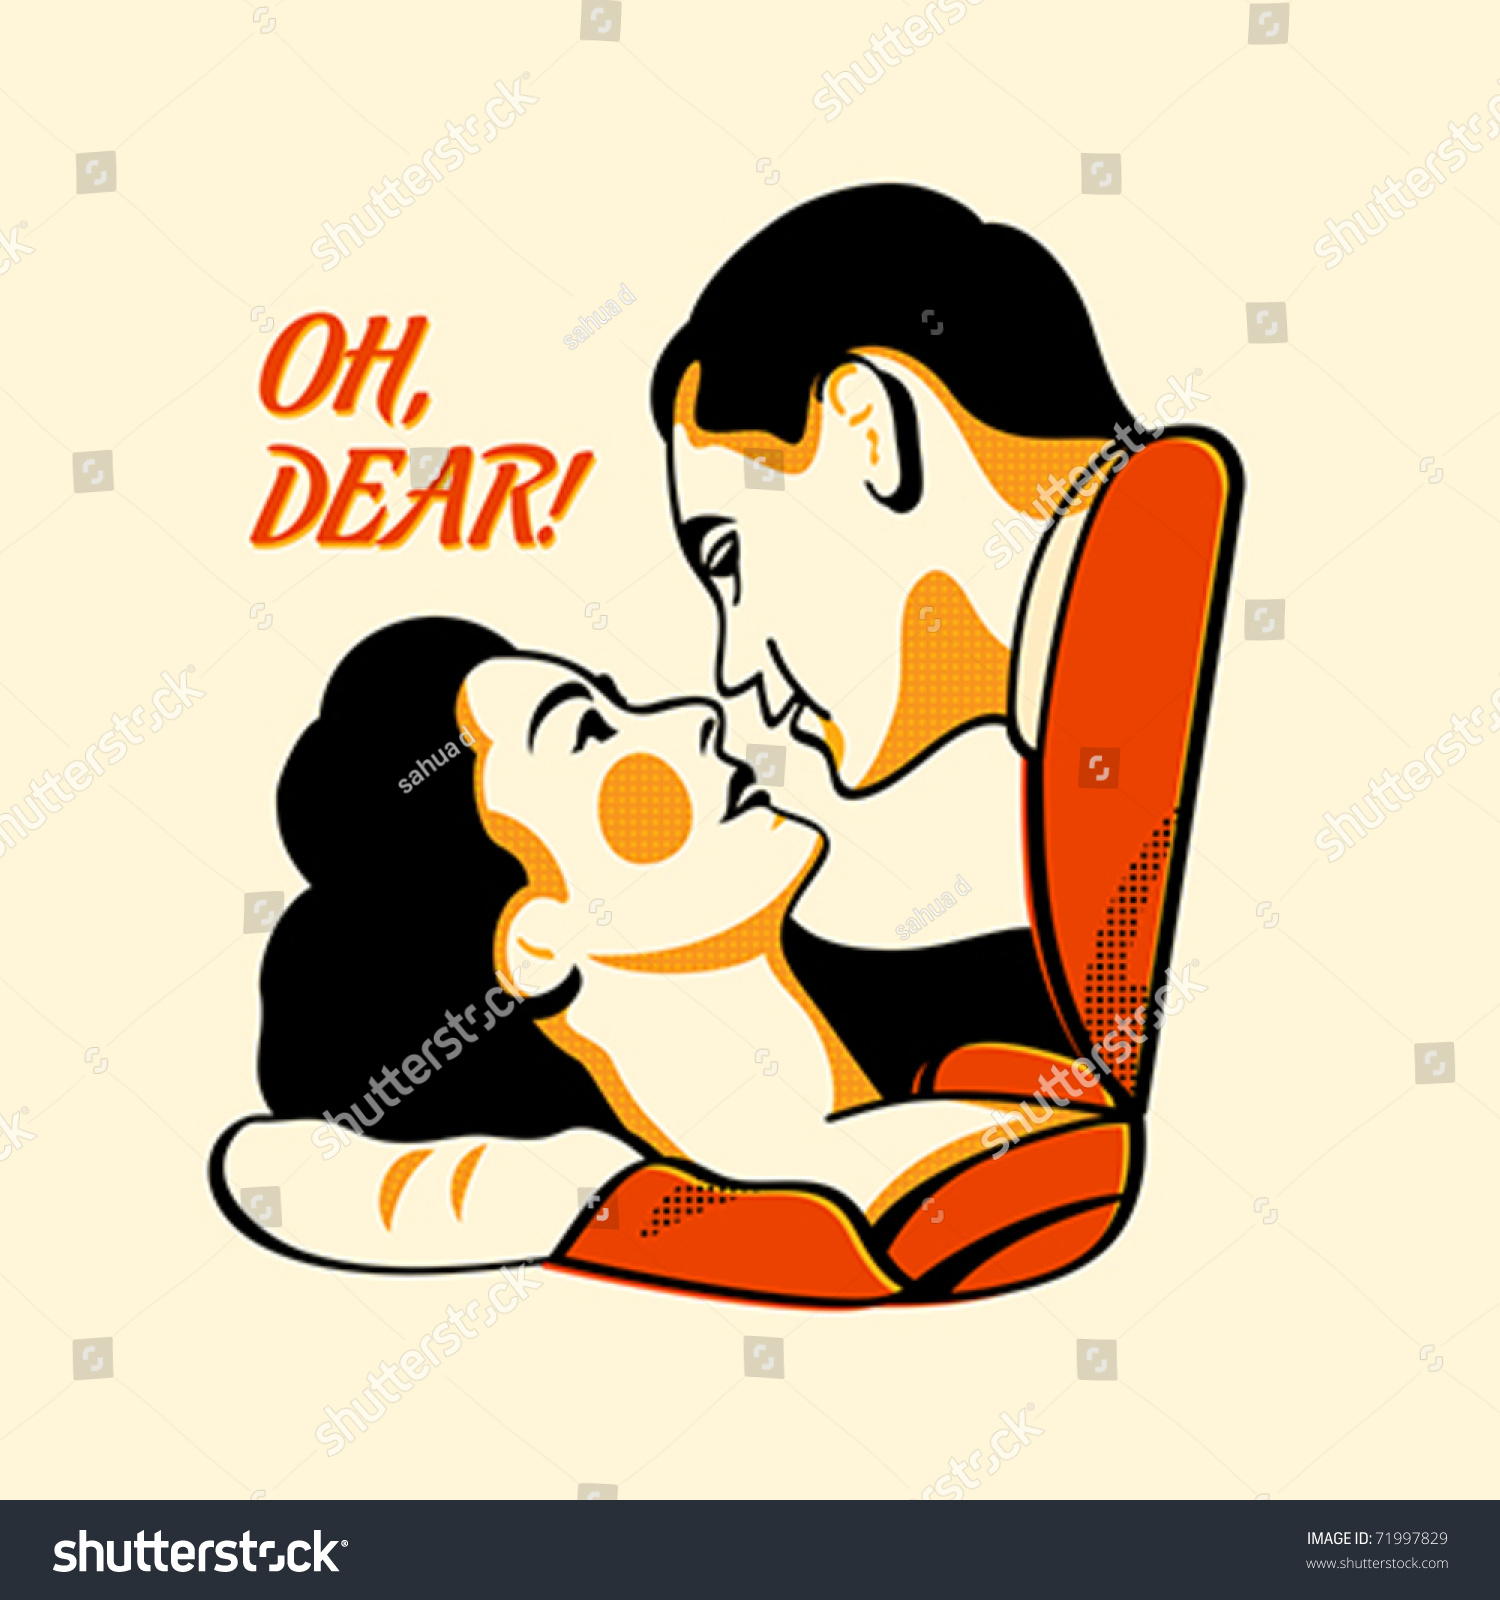 Color halftone printing - Retro Lovers In Three Color Print Halftone Pattern Stock Vector Illustration 71997829 Shutterstock